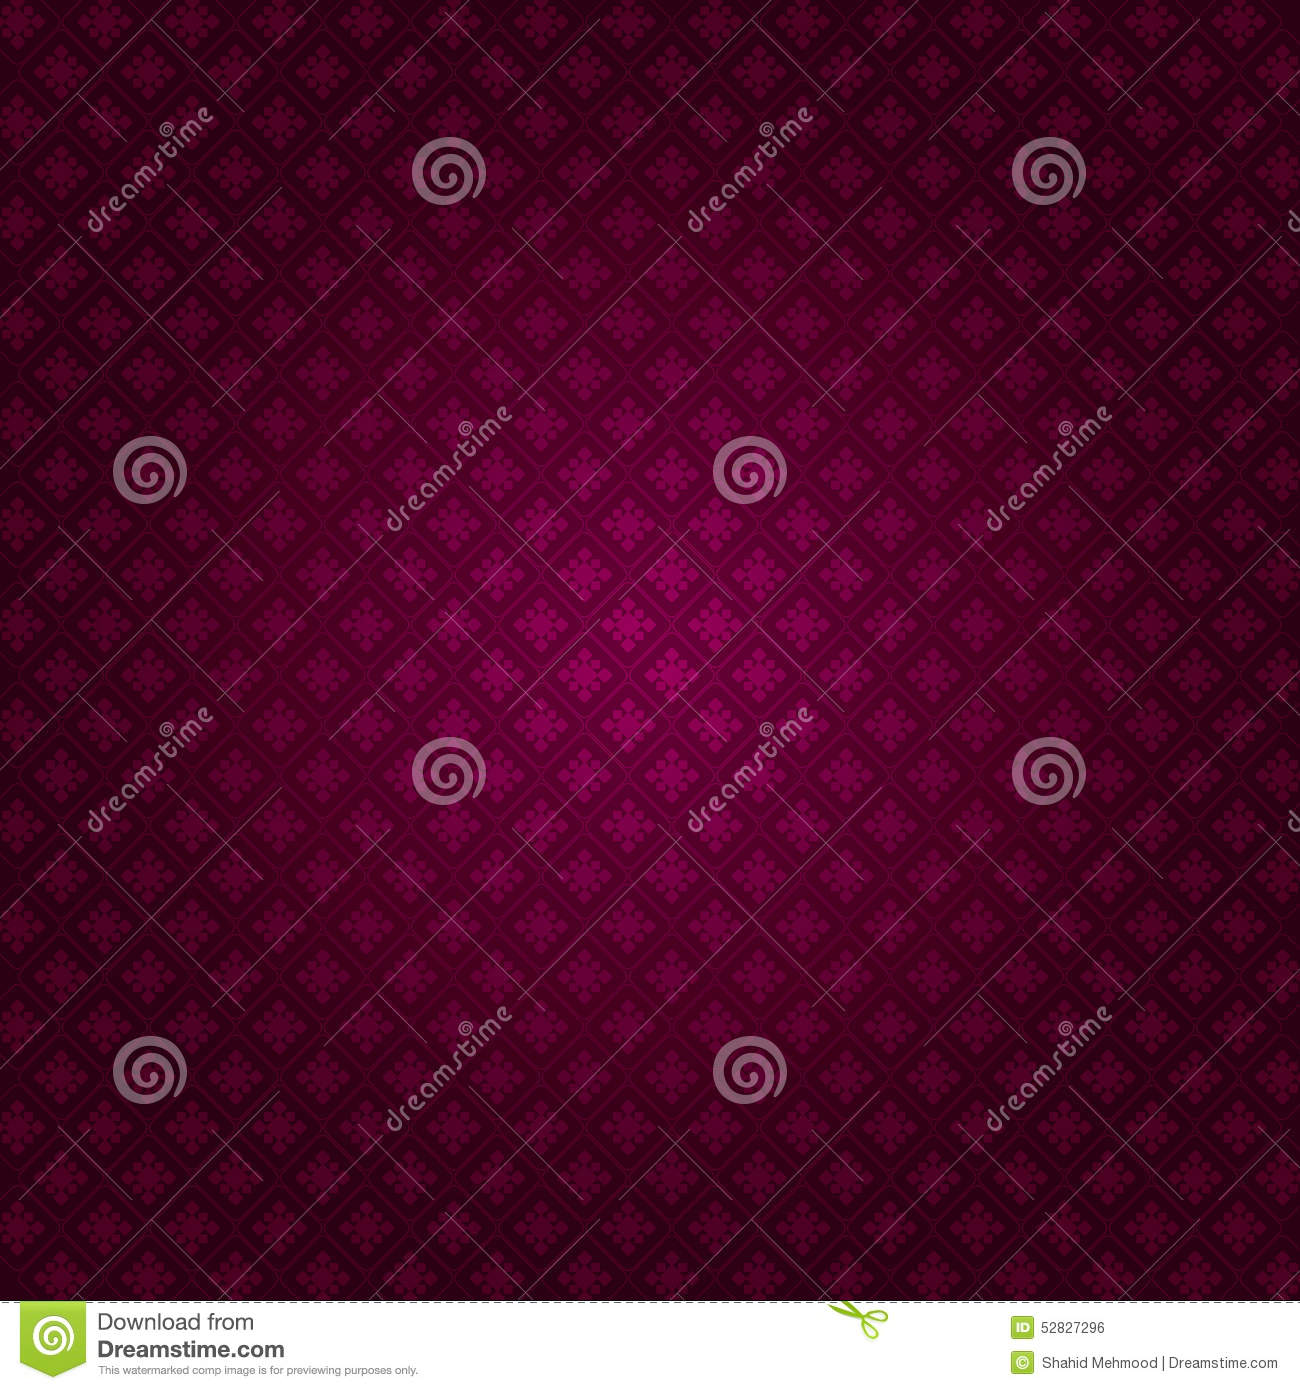 Abstract color full Background - 06